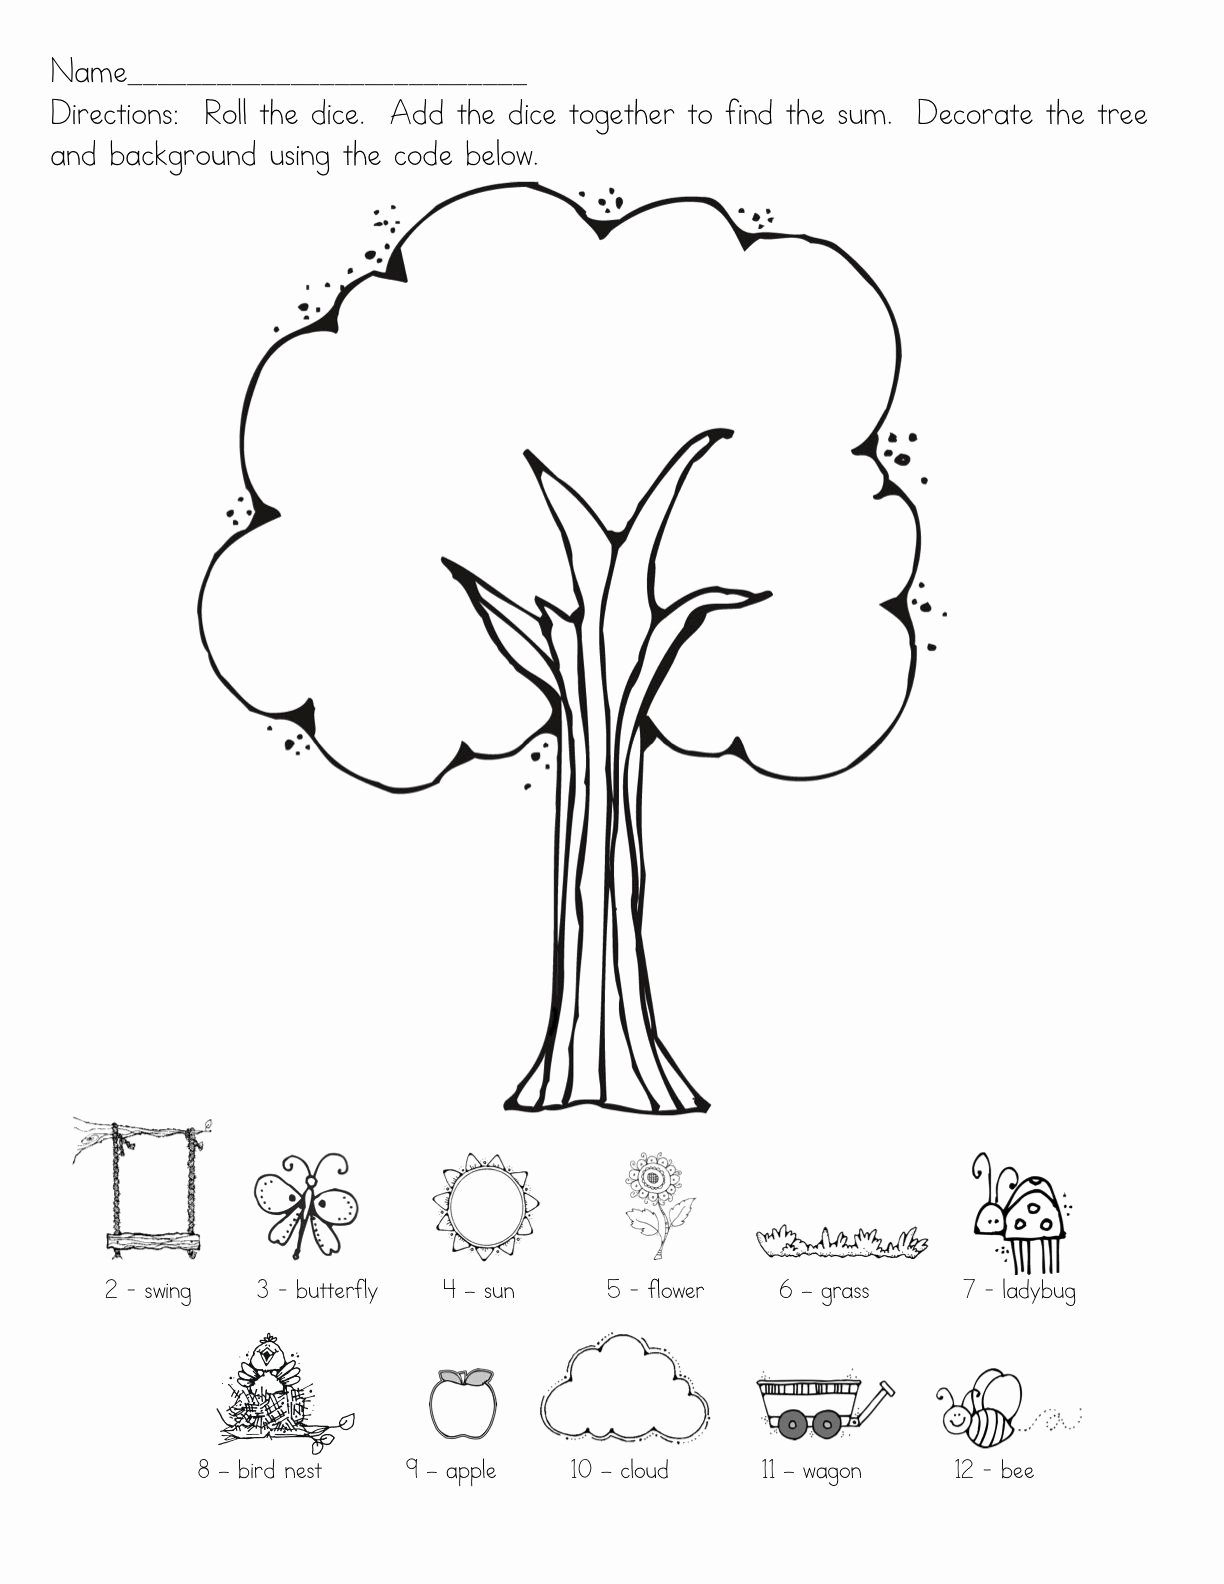 Spatial Concepts Worksheets for Preschoolers Fresh Directions Worksheet Preschool Printable Worksheets and